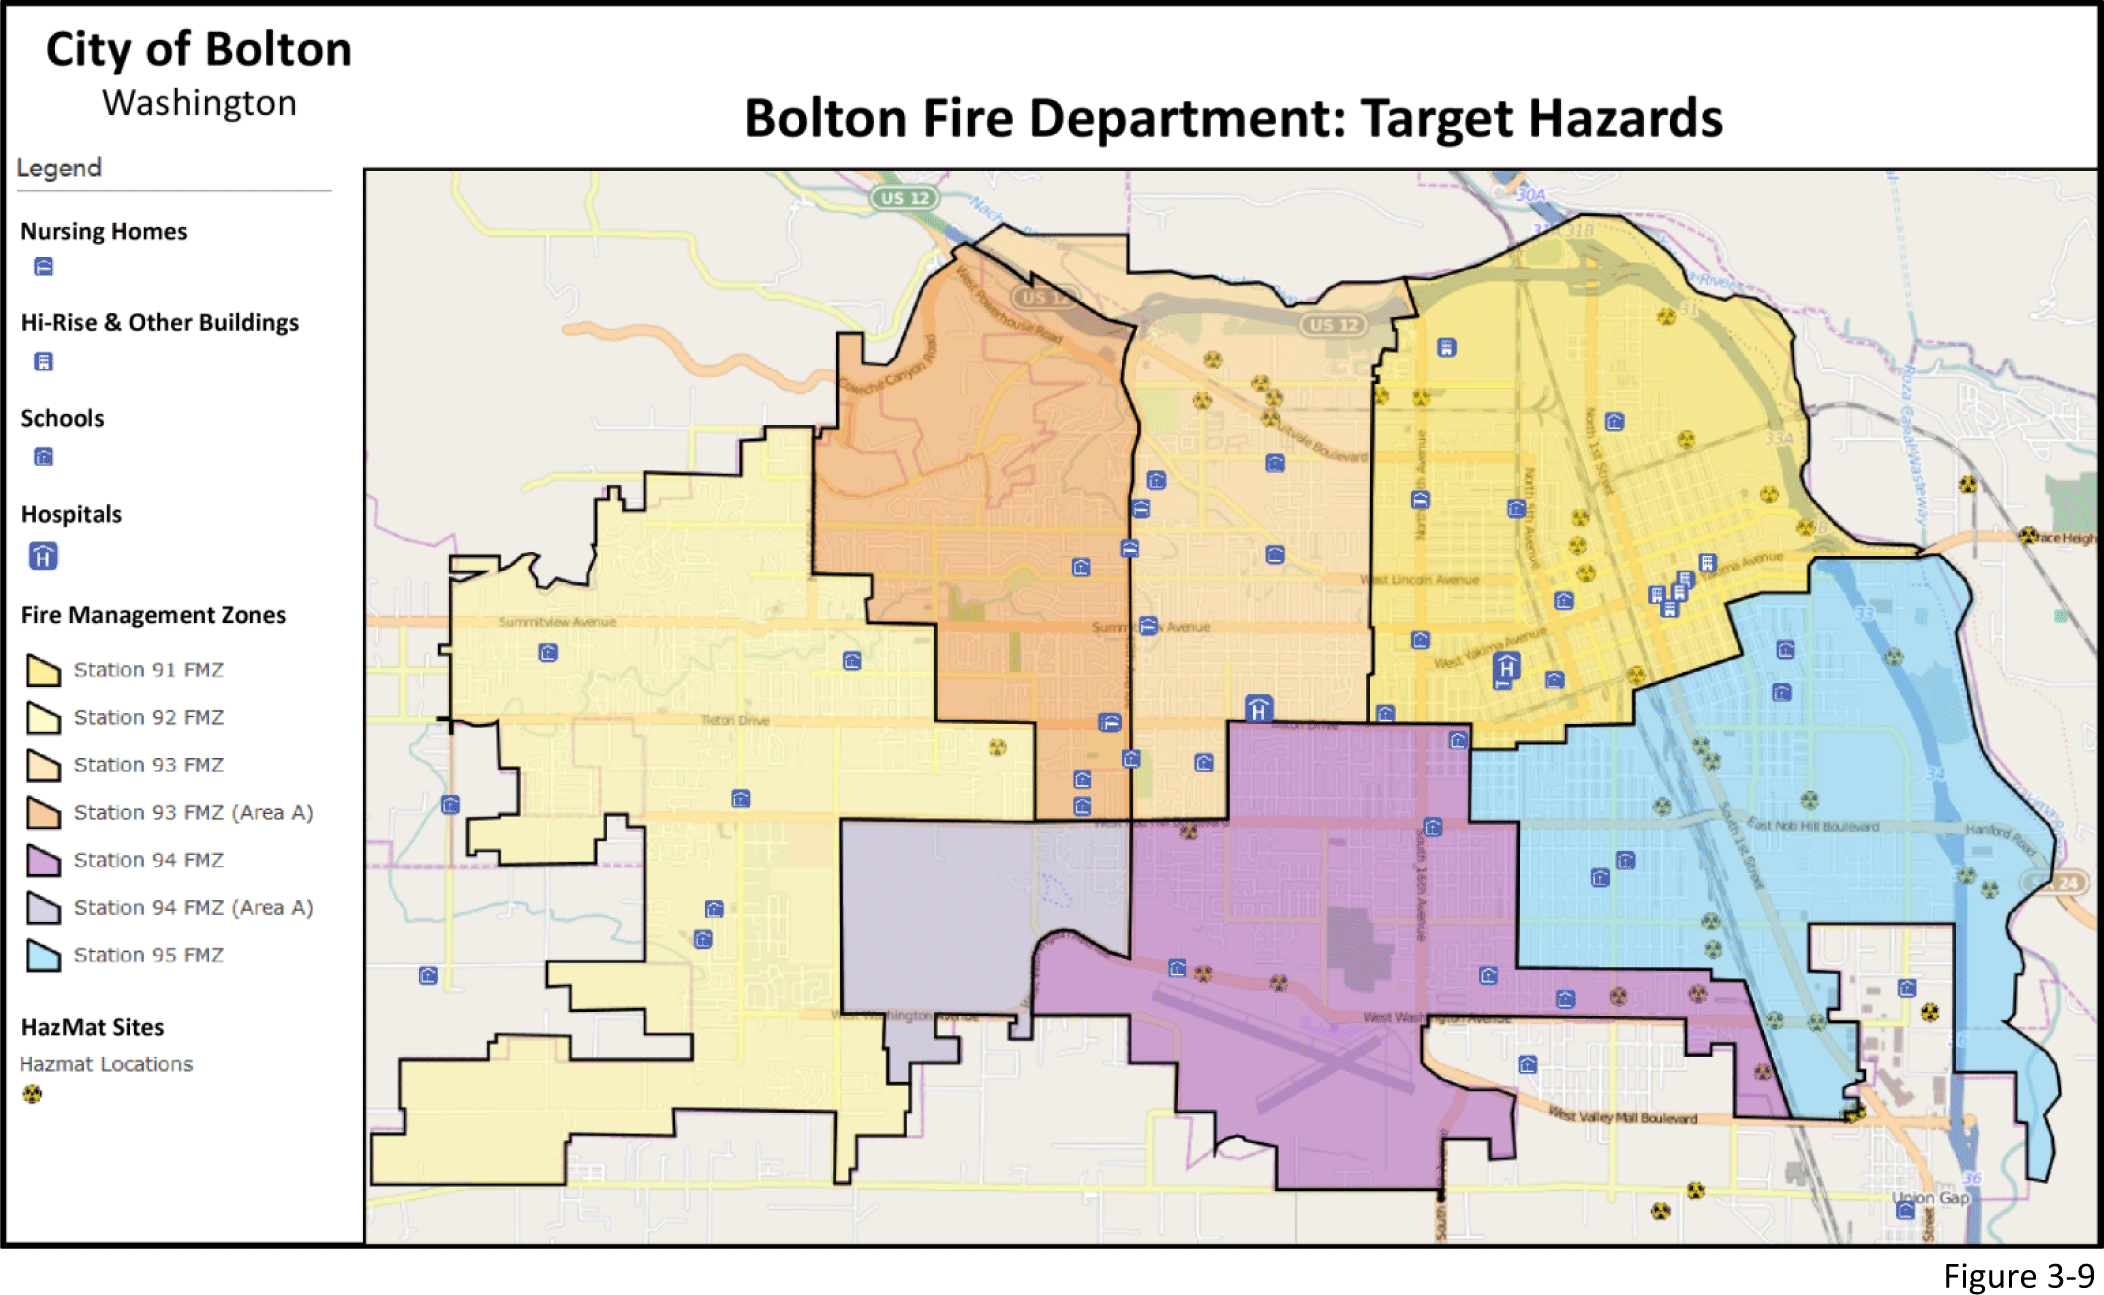 Figure 3-9: Map of target hazards.